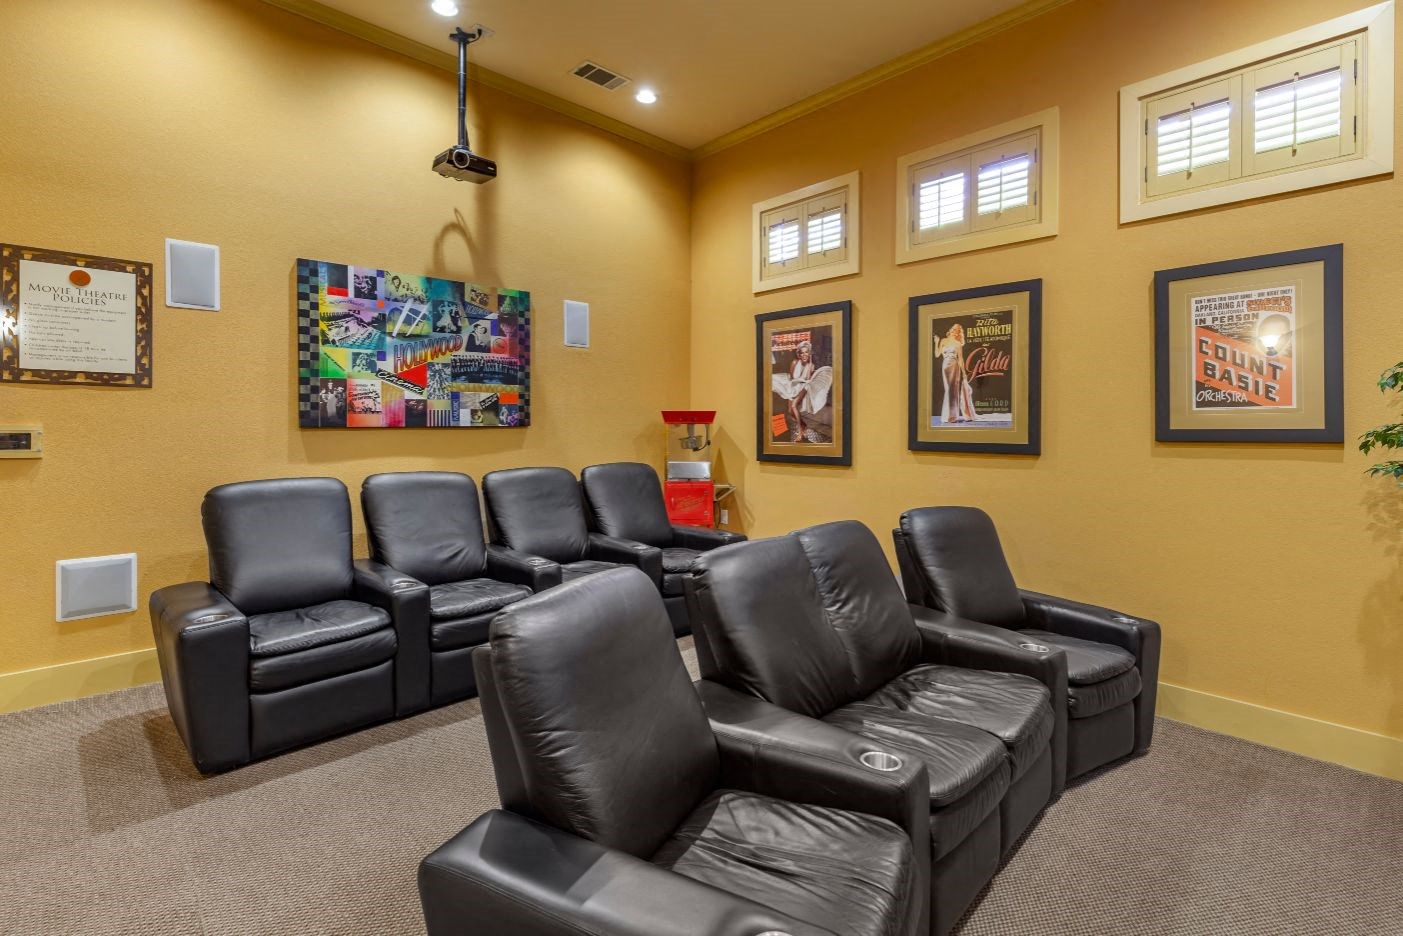 Movie theater with black leather recliners and decorative photos in the background.